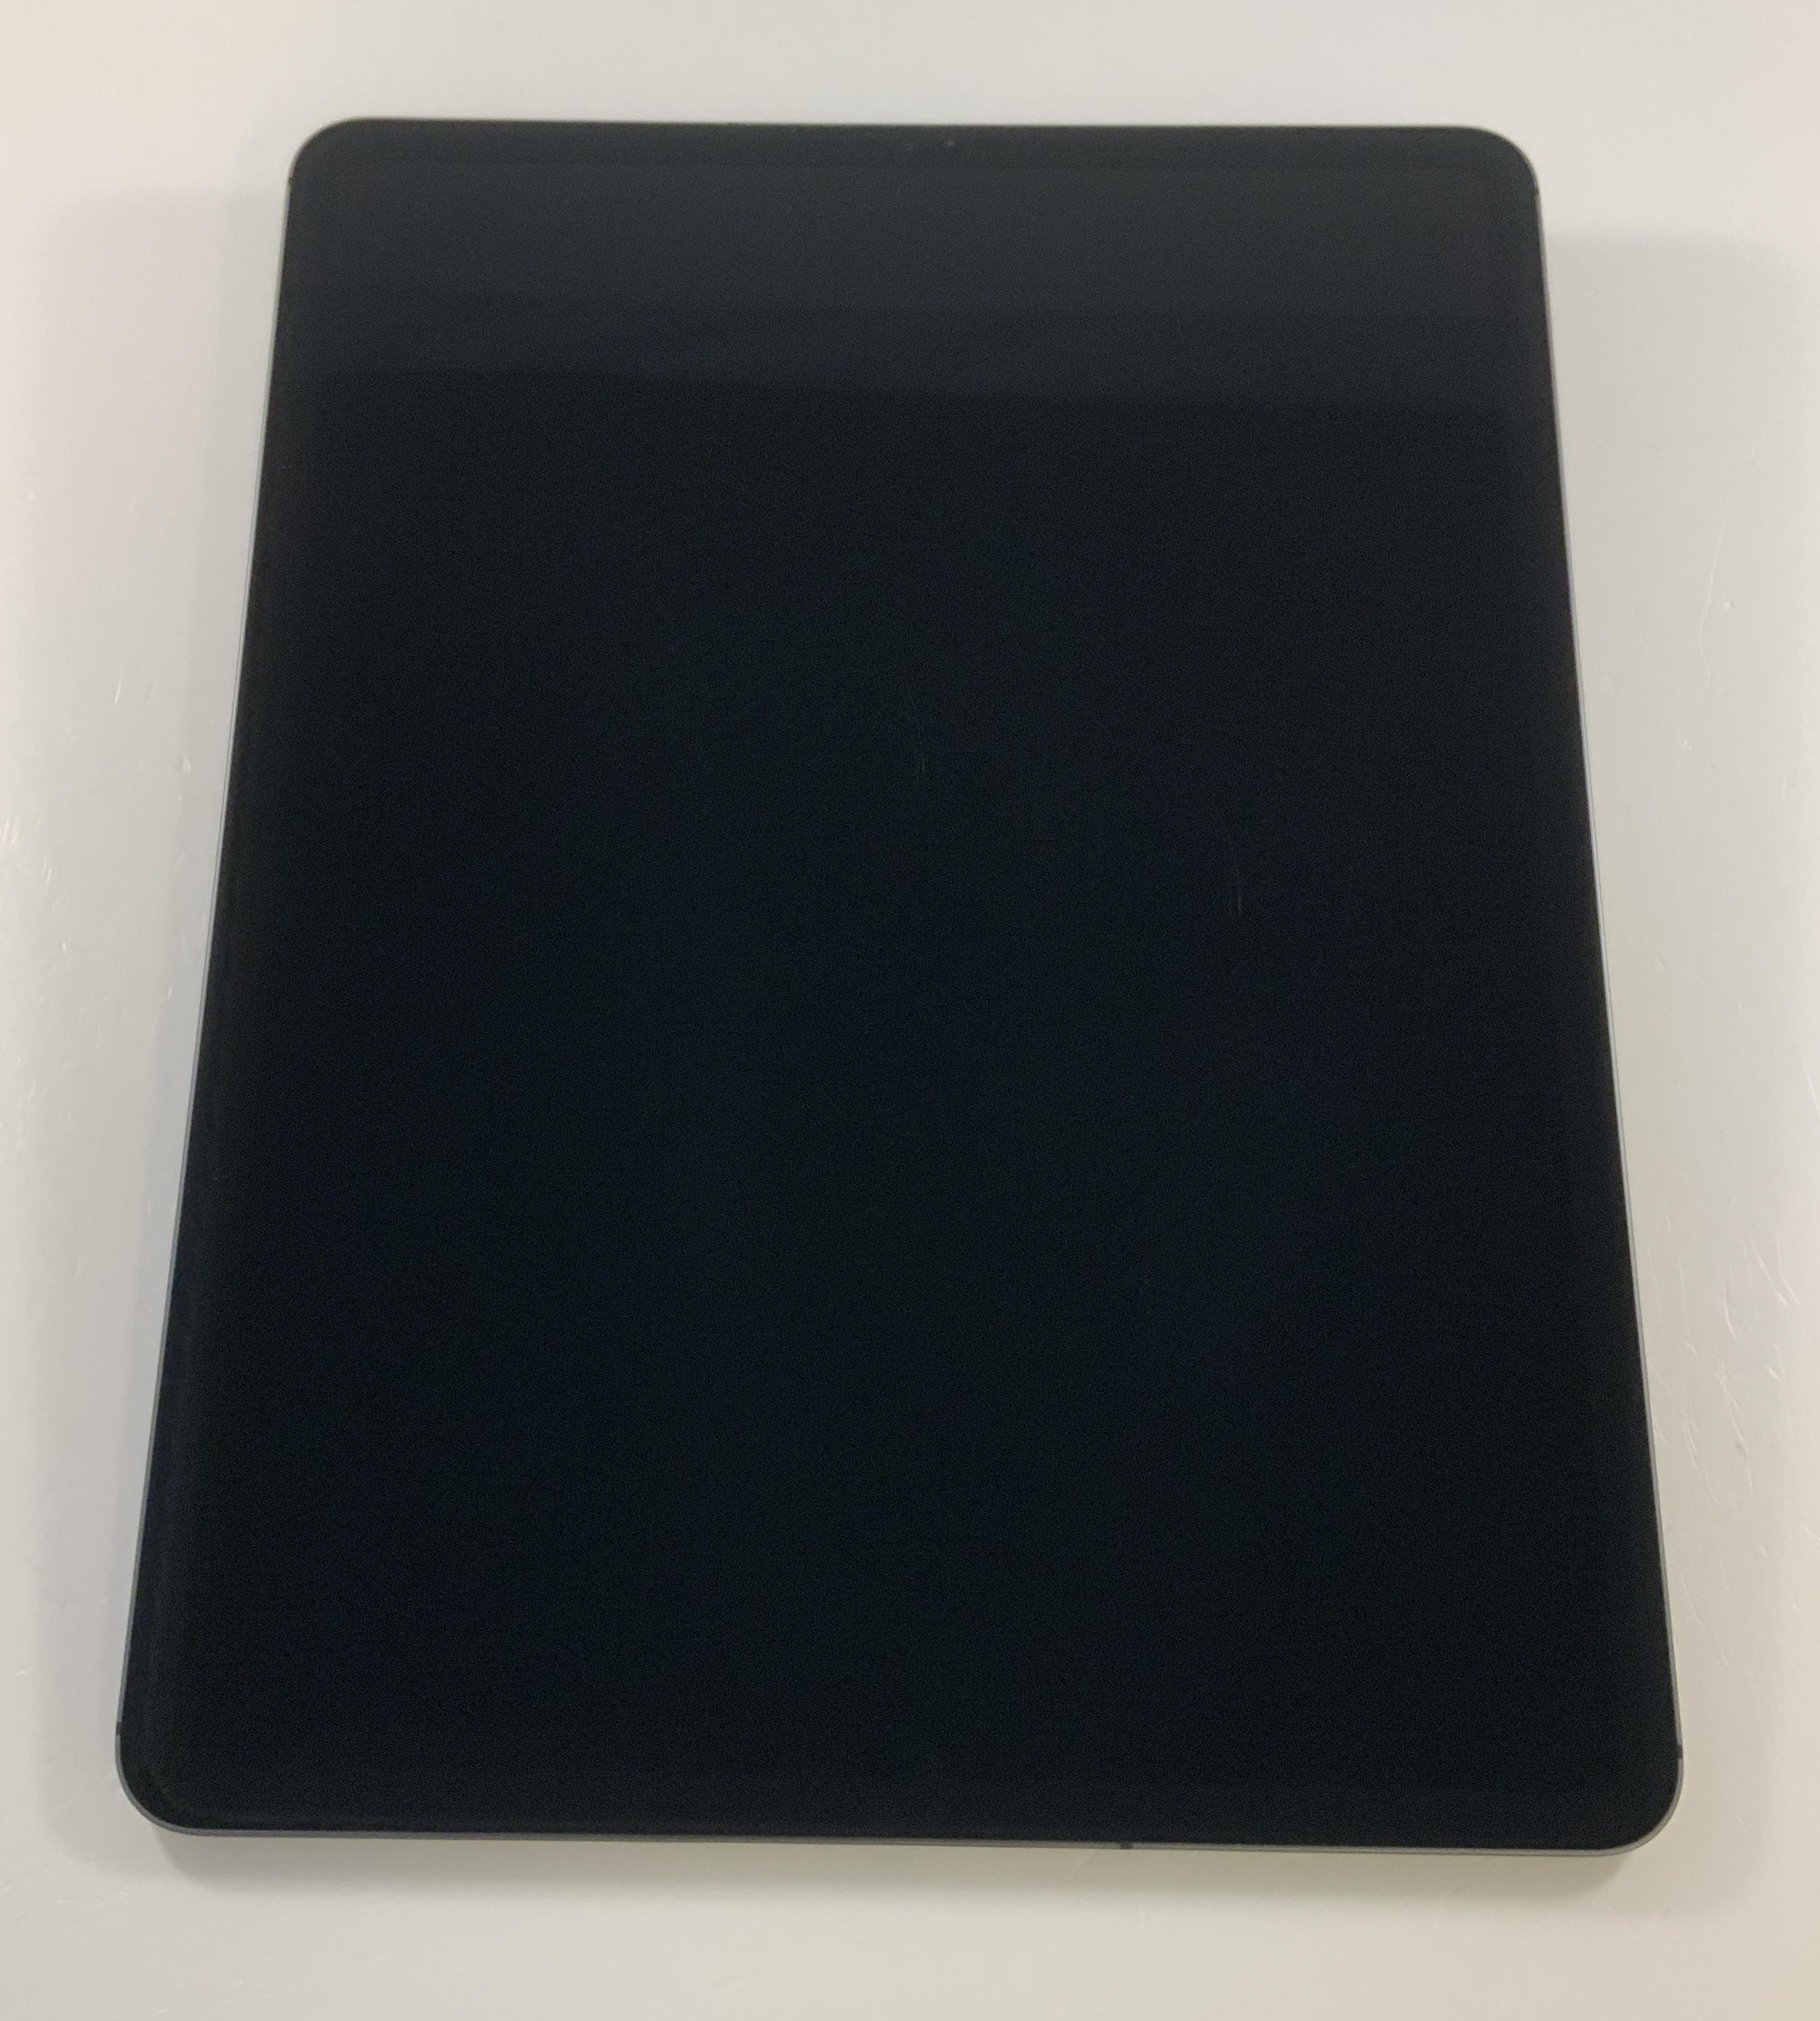 "iPad Pro 12.9"" Wi-Fi + Cellular (3rd Gen) 256GB, 256GB, Space Gray, Bild 1"